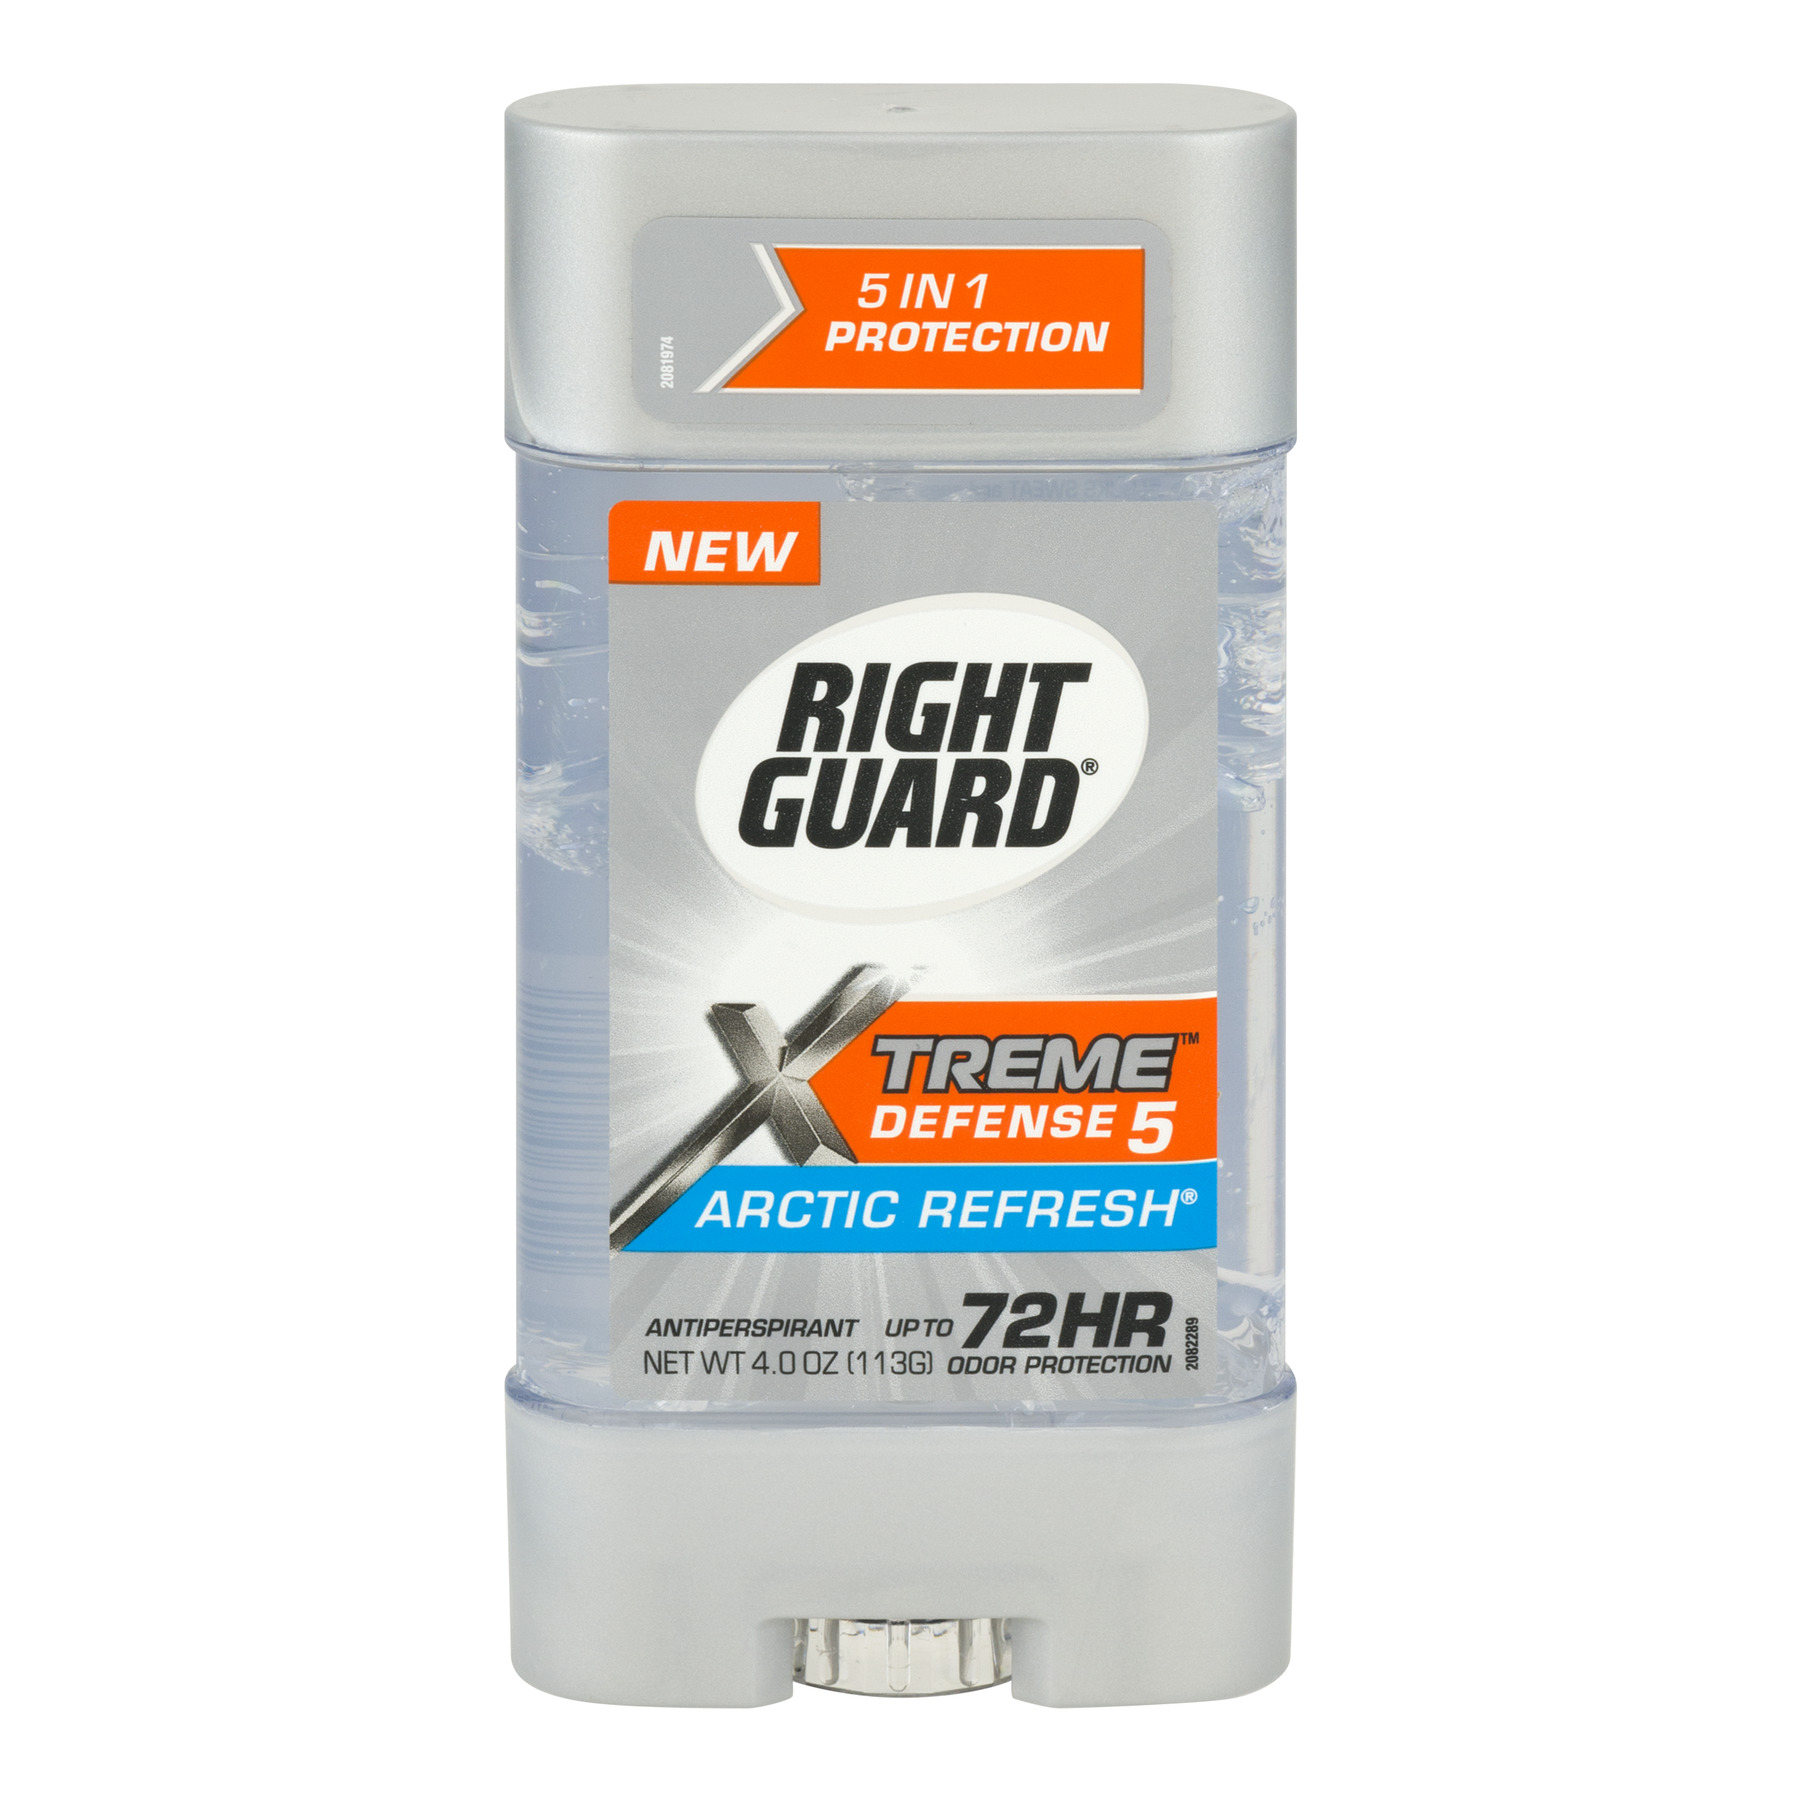 Right Guard Xtreme Defense 5 Antiperspirant Deodorant Gel, Arctic Refresh, 4 Ounce